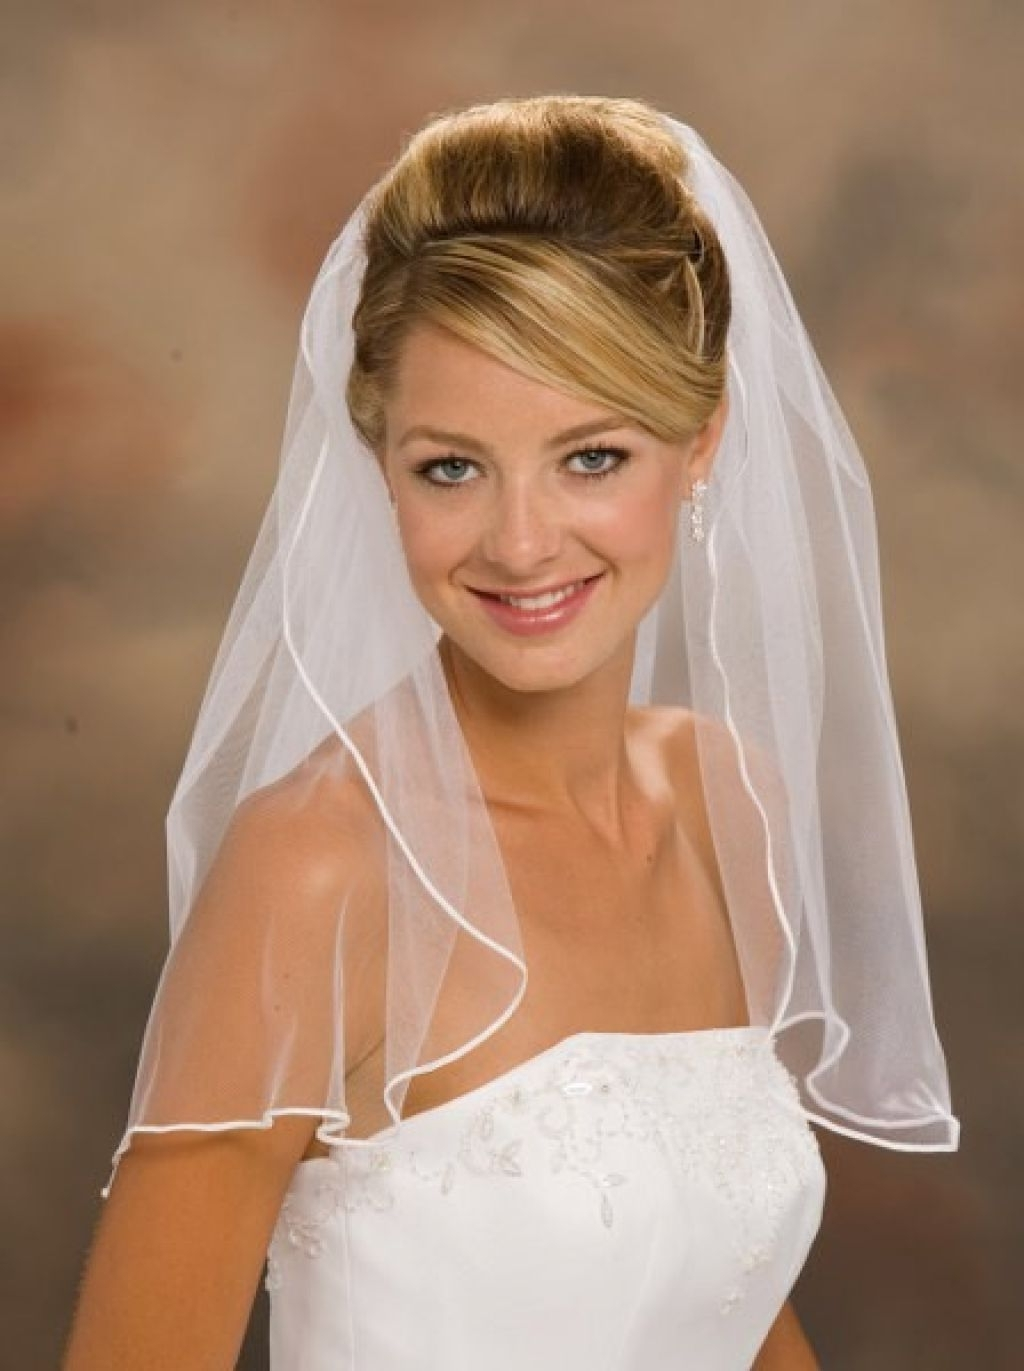 Wedding Hair : Fresh Wedding Hairstyles With Veil Long Hair From Regarding Preferred Bridal Hairstyles For Short Length Hair With Veil (View 13 of 15)